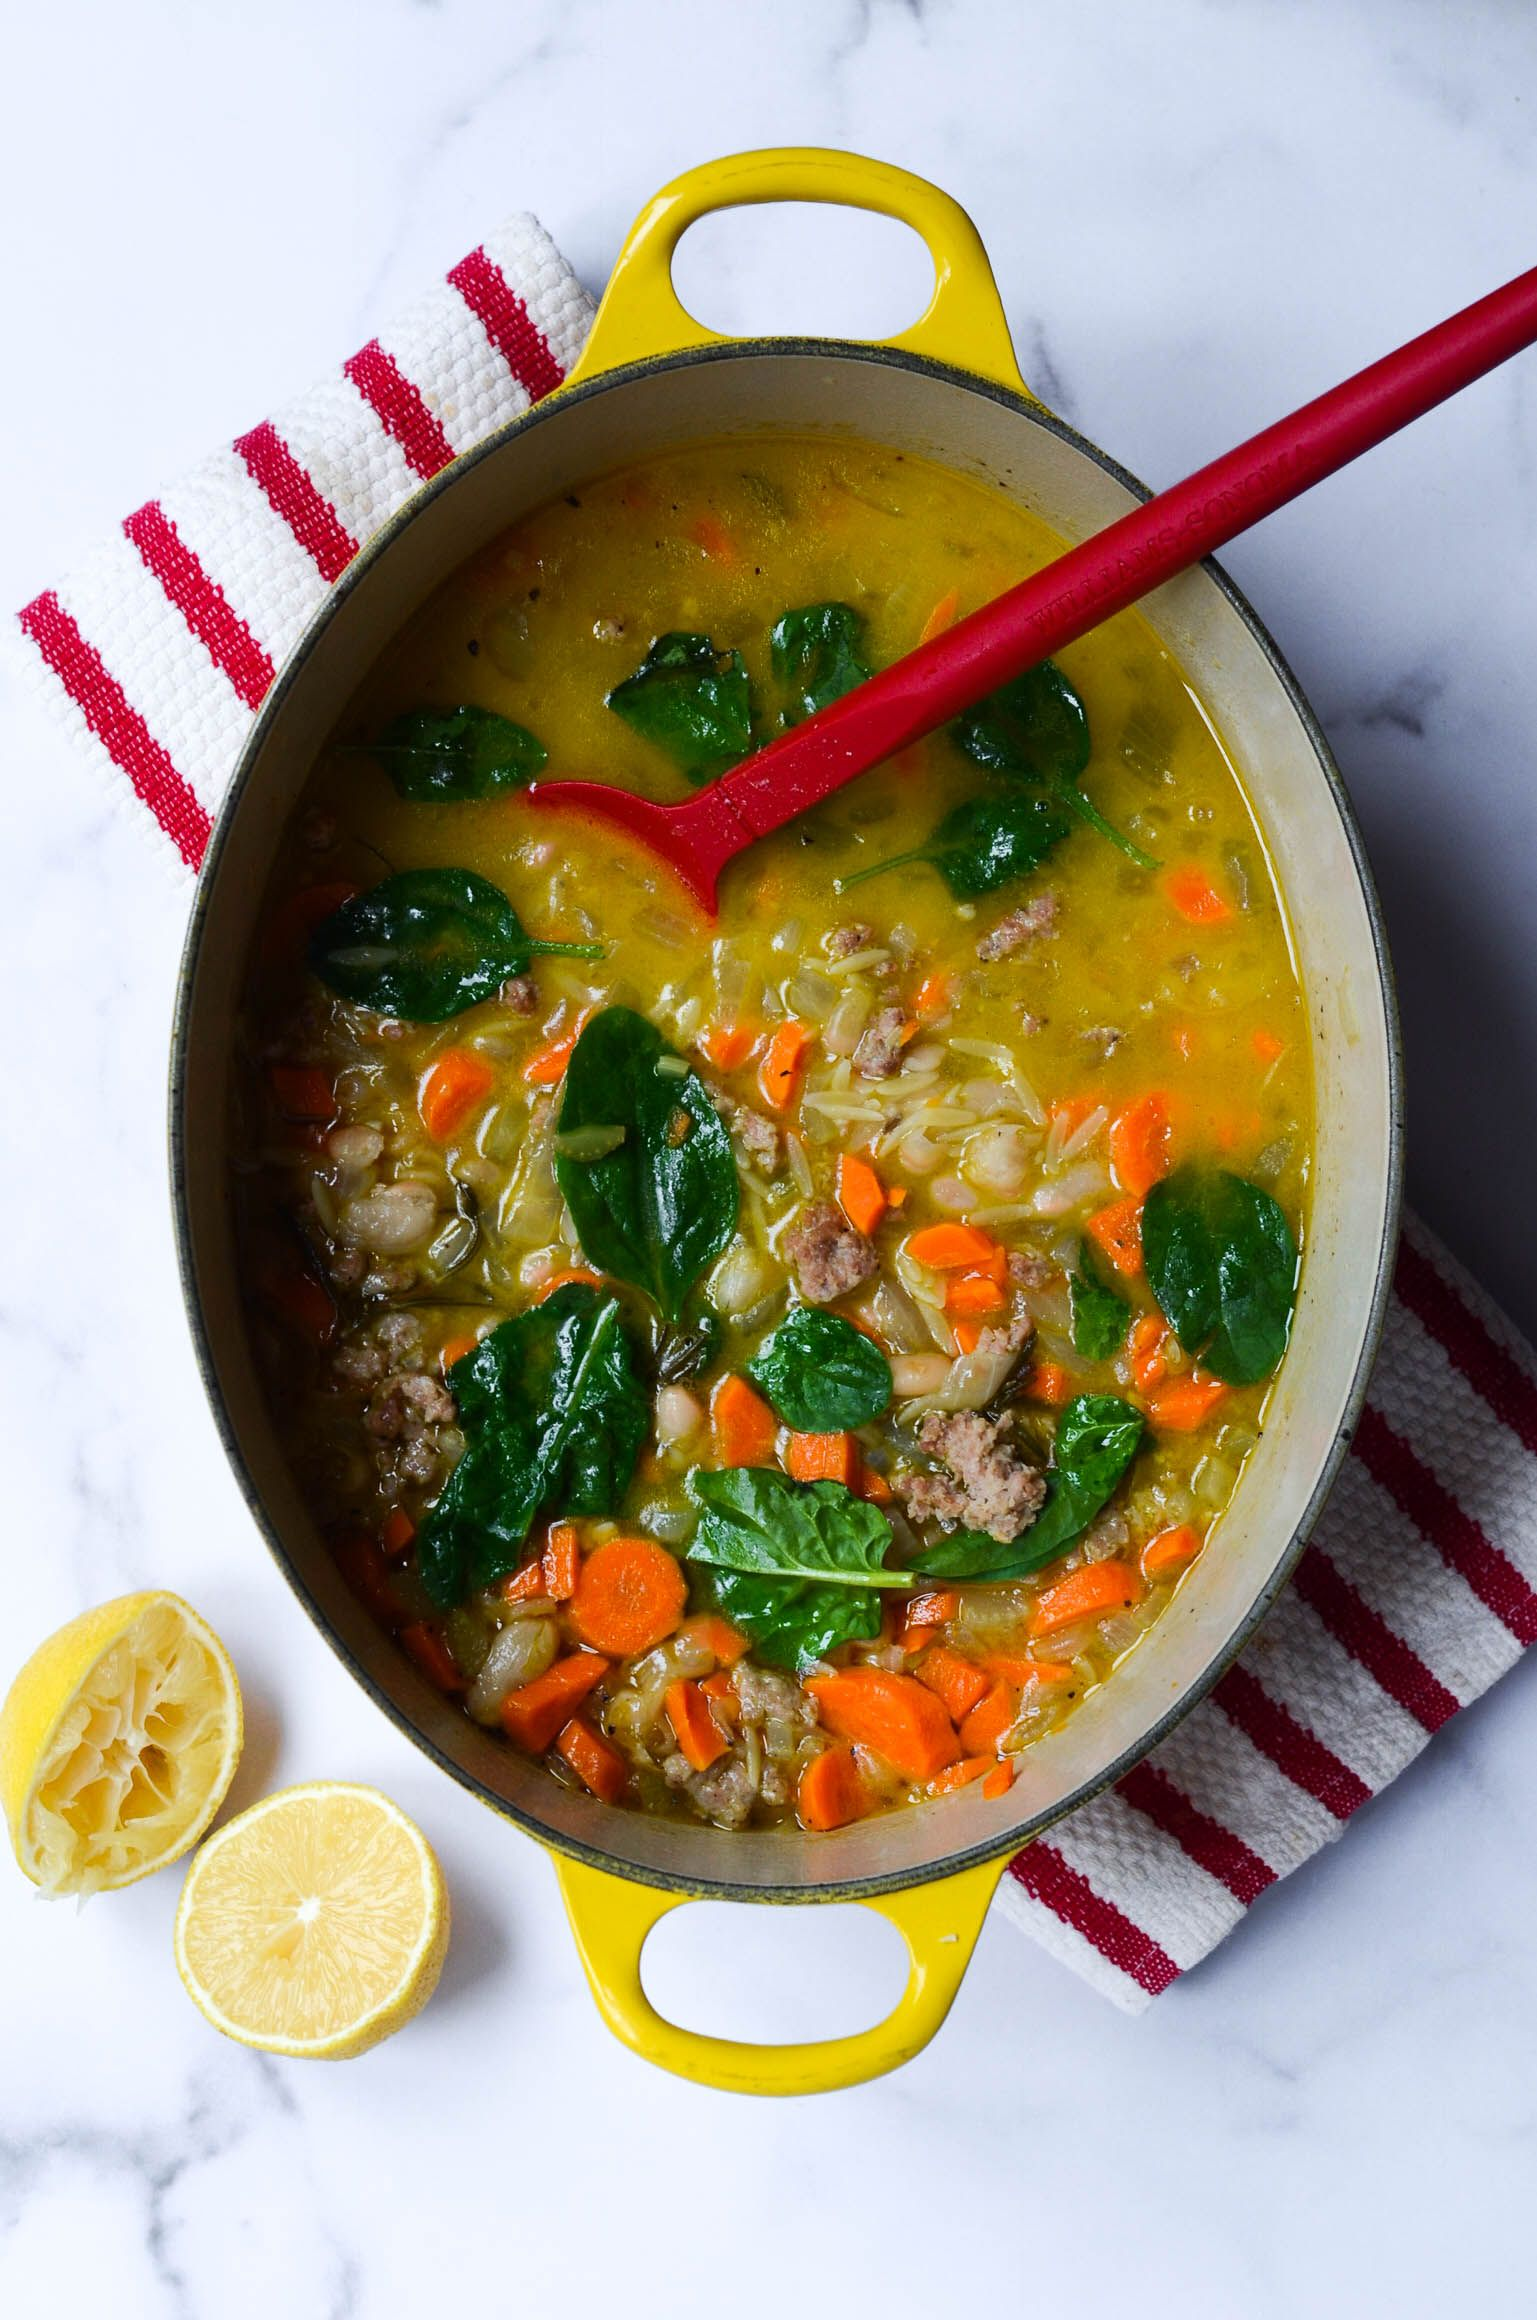 Orzo Soup with Sausage and Spinach